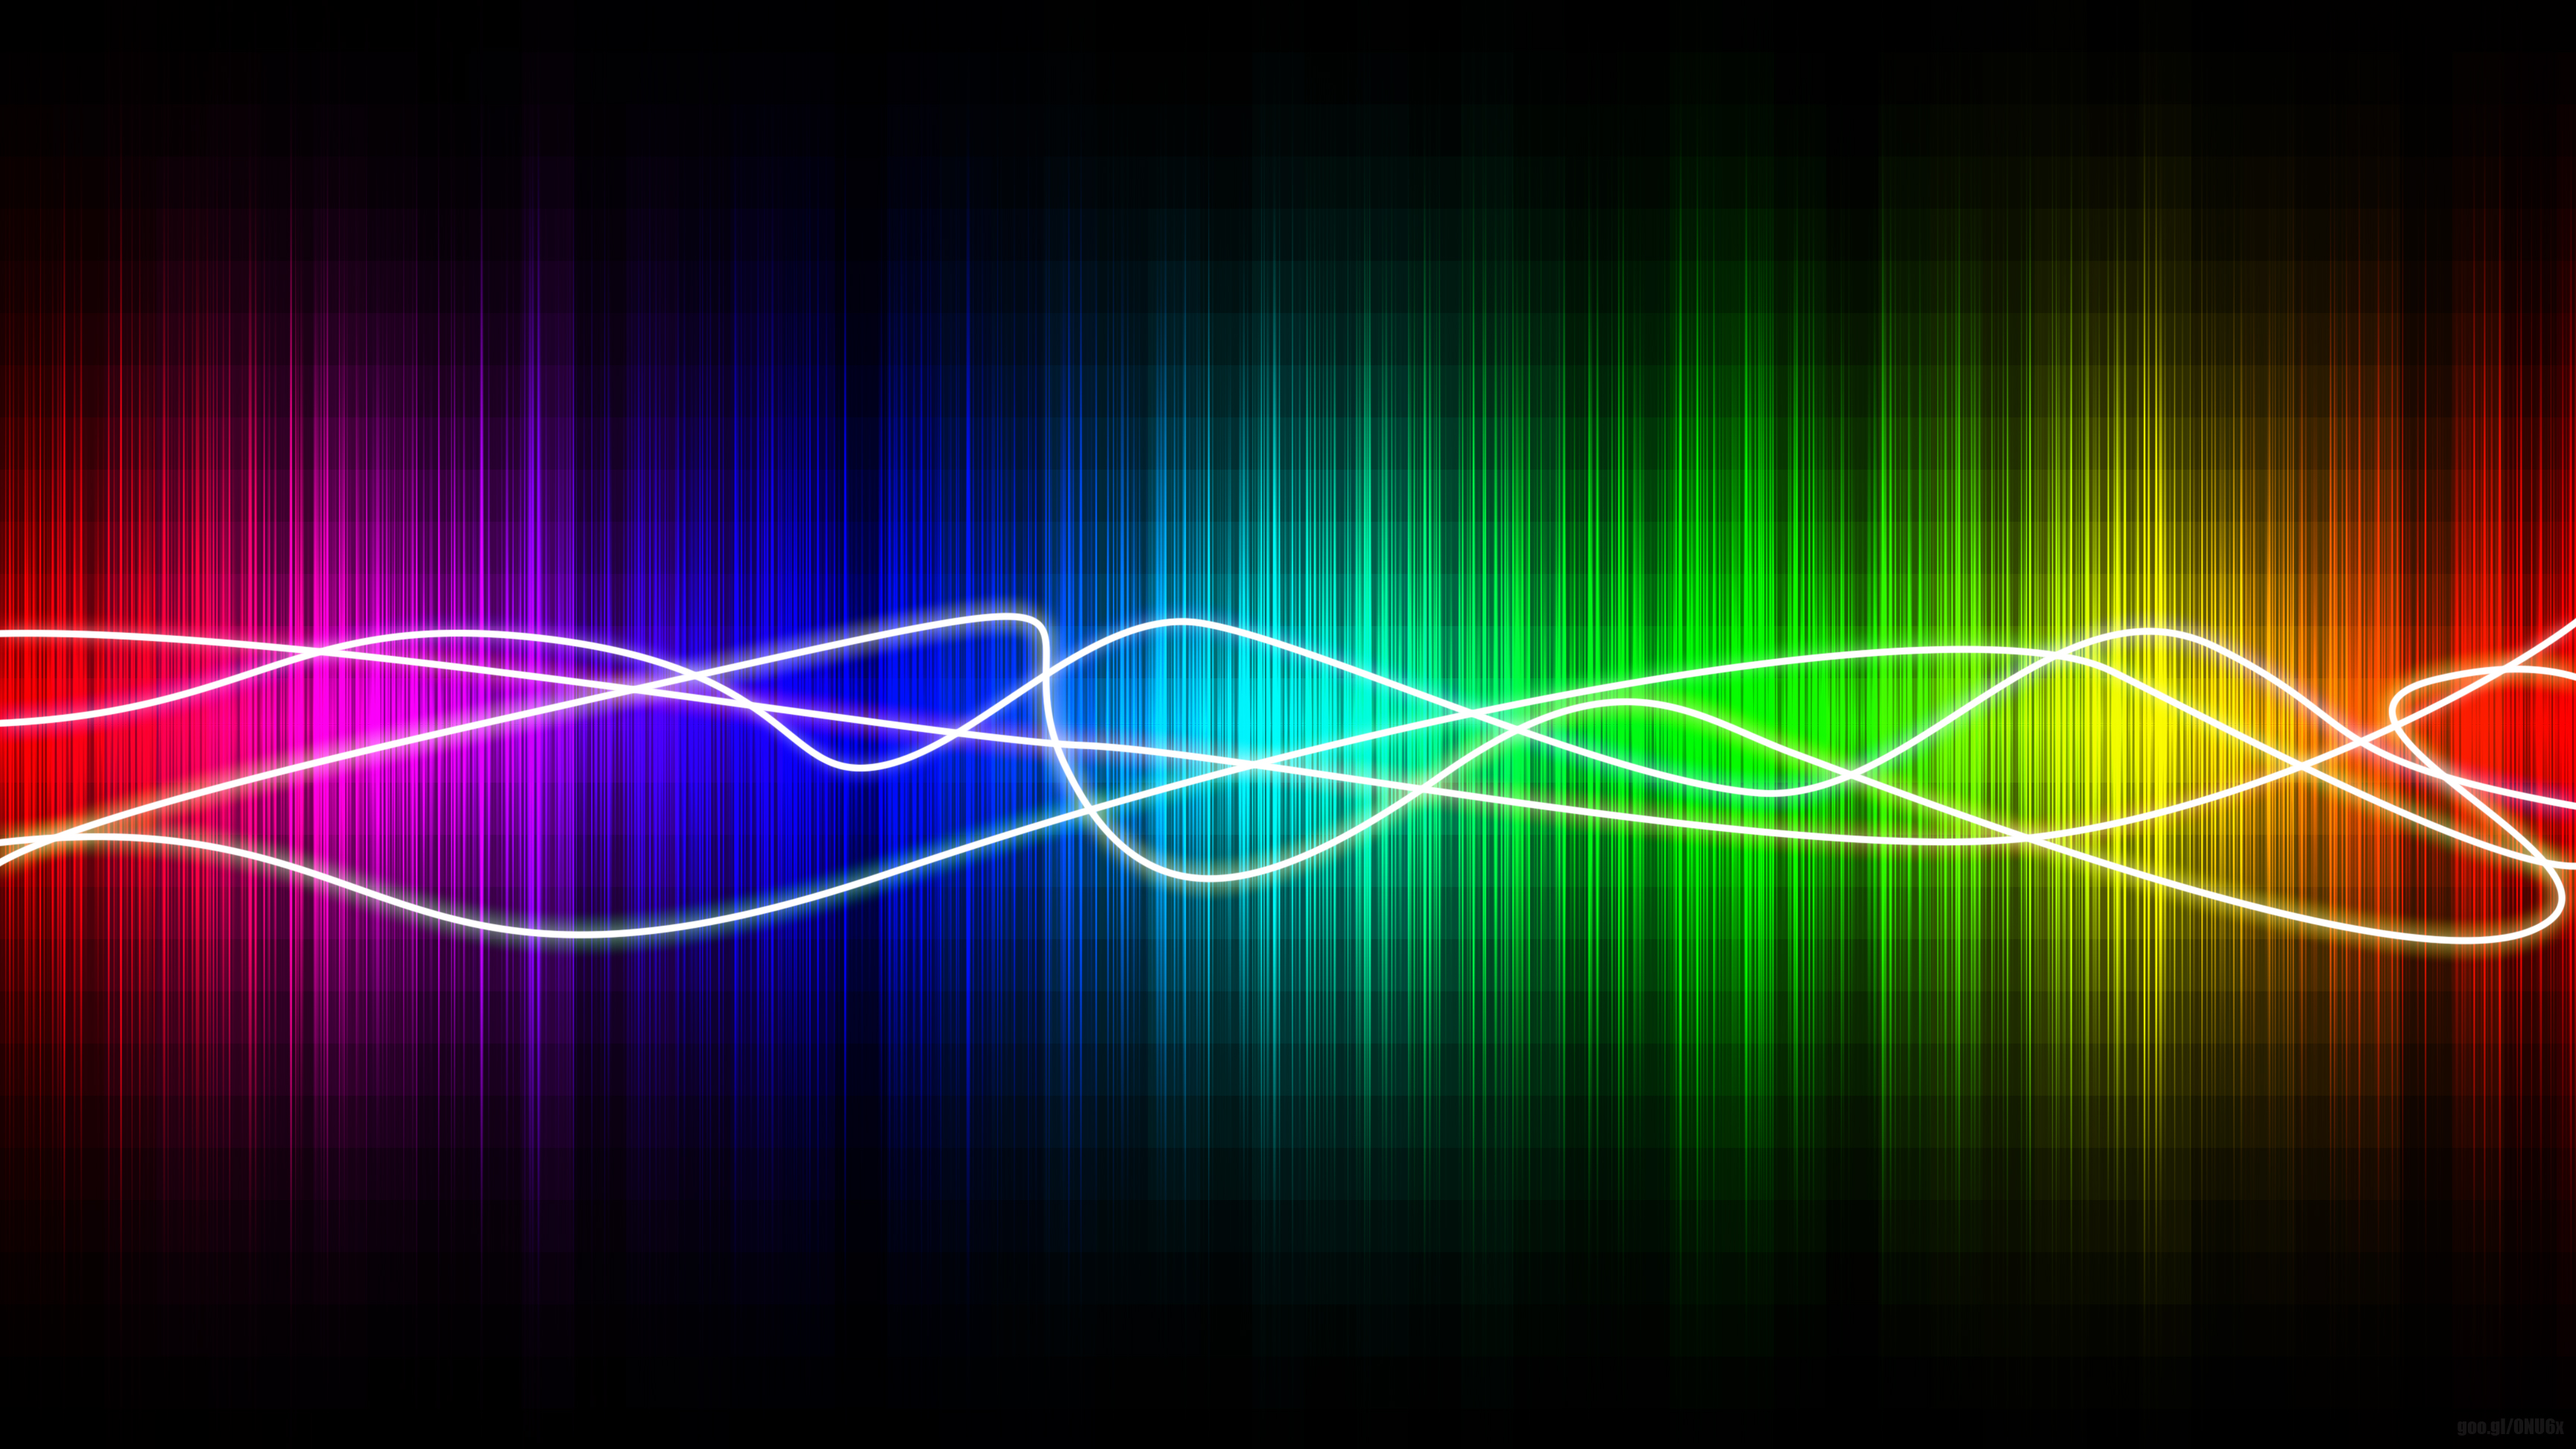 Full Color Music Background: Colors United Full HD Wallpaper And Background Image